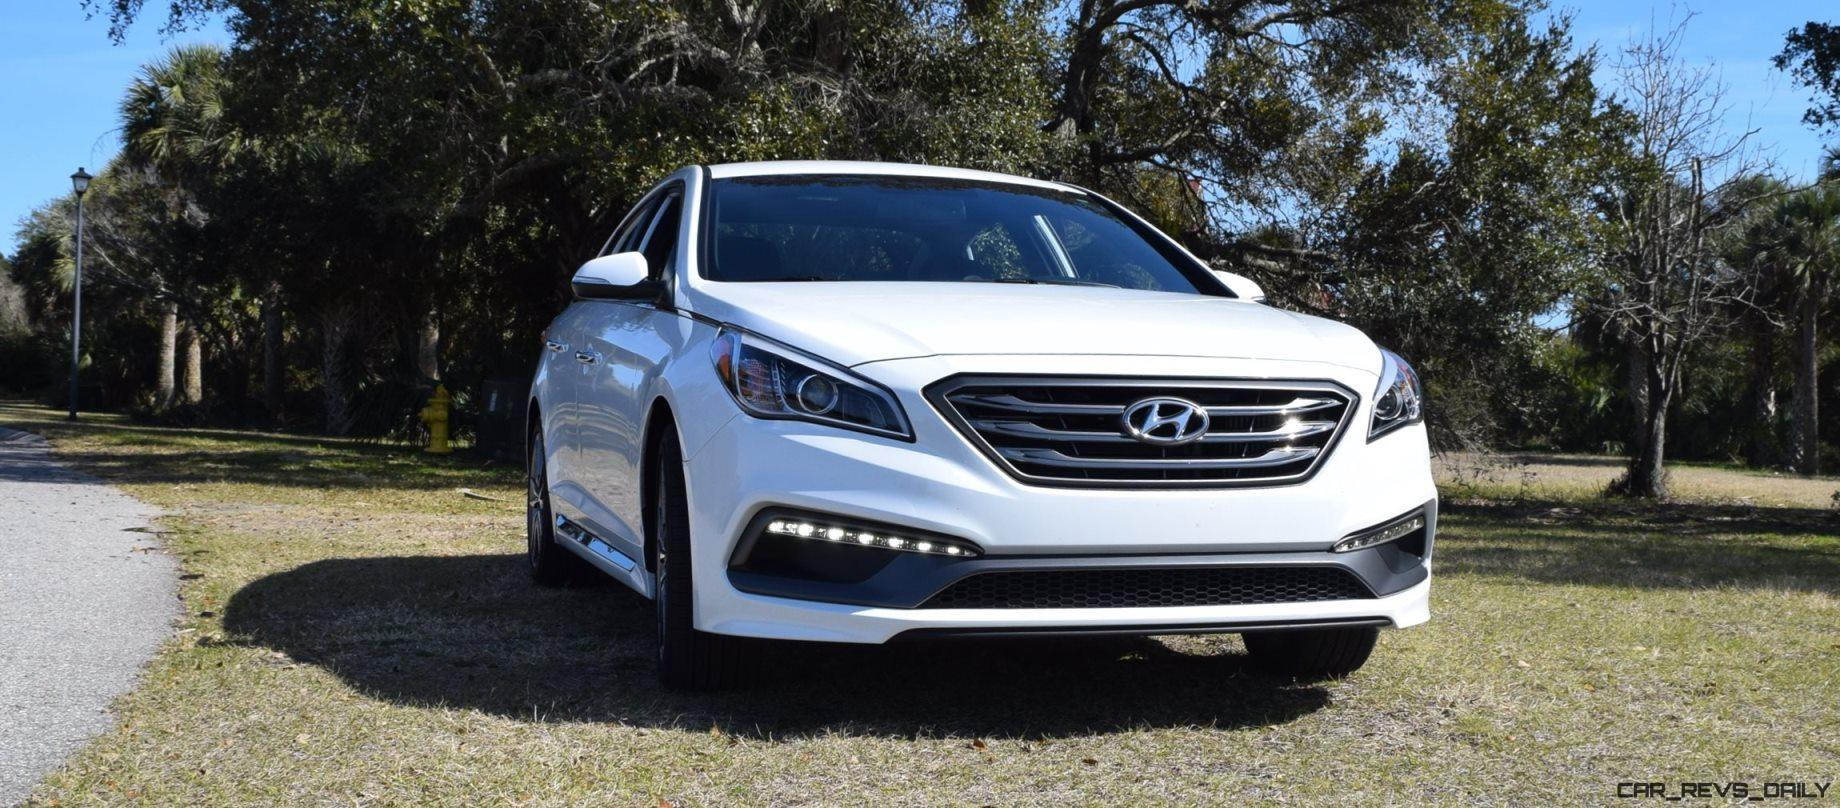 2016 hyundai sonata sport 2 0t quartz white 53. Black Bedroom Furniture Sets. Home Design Ideas